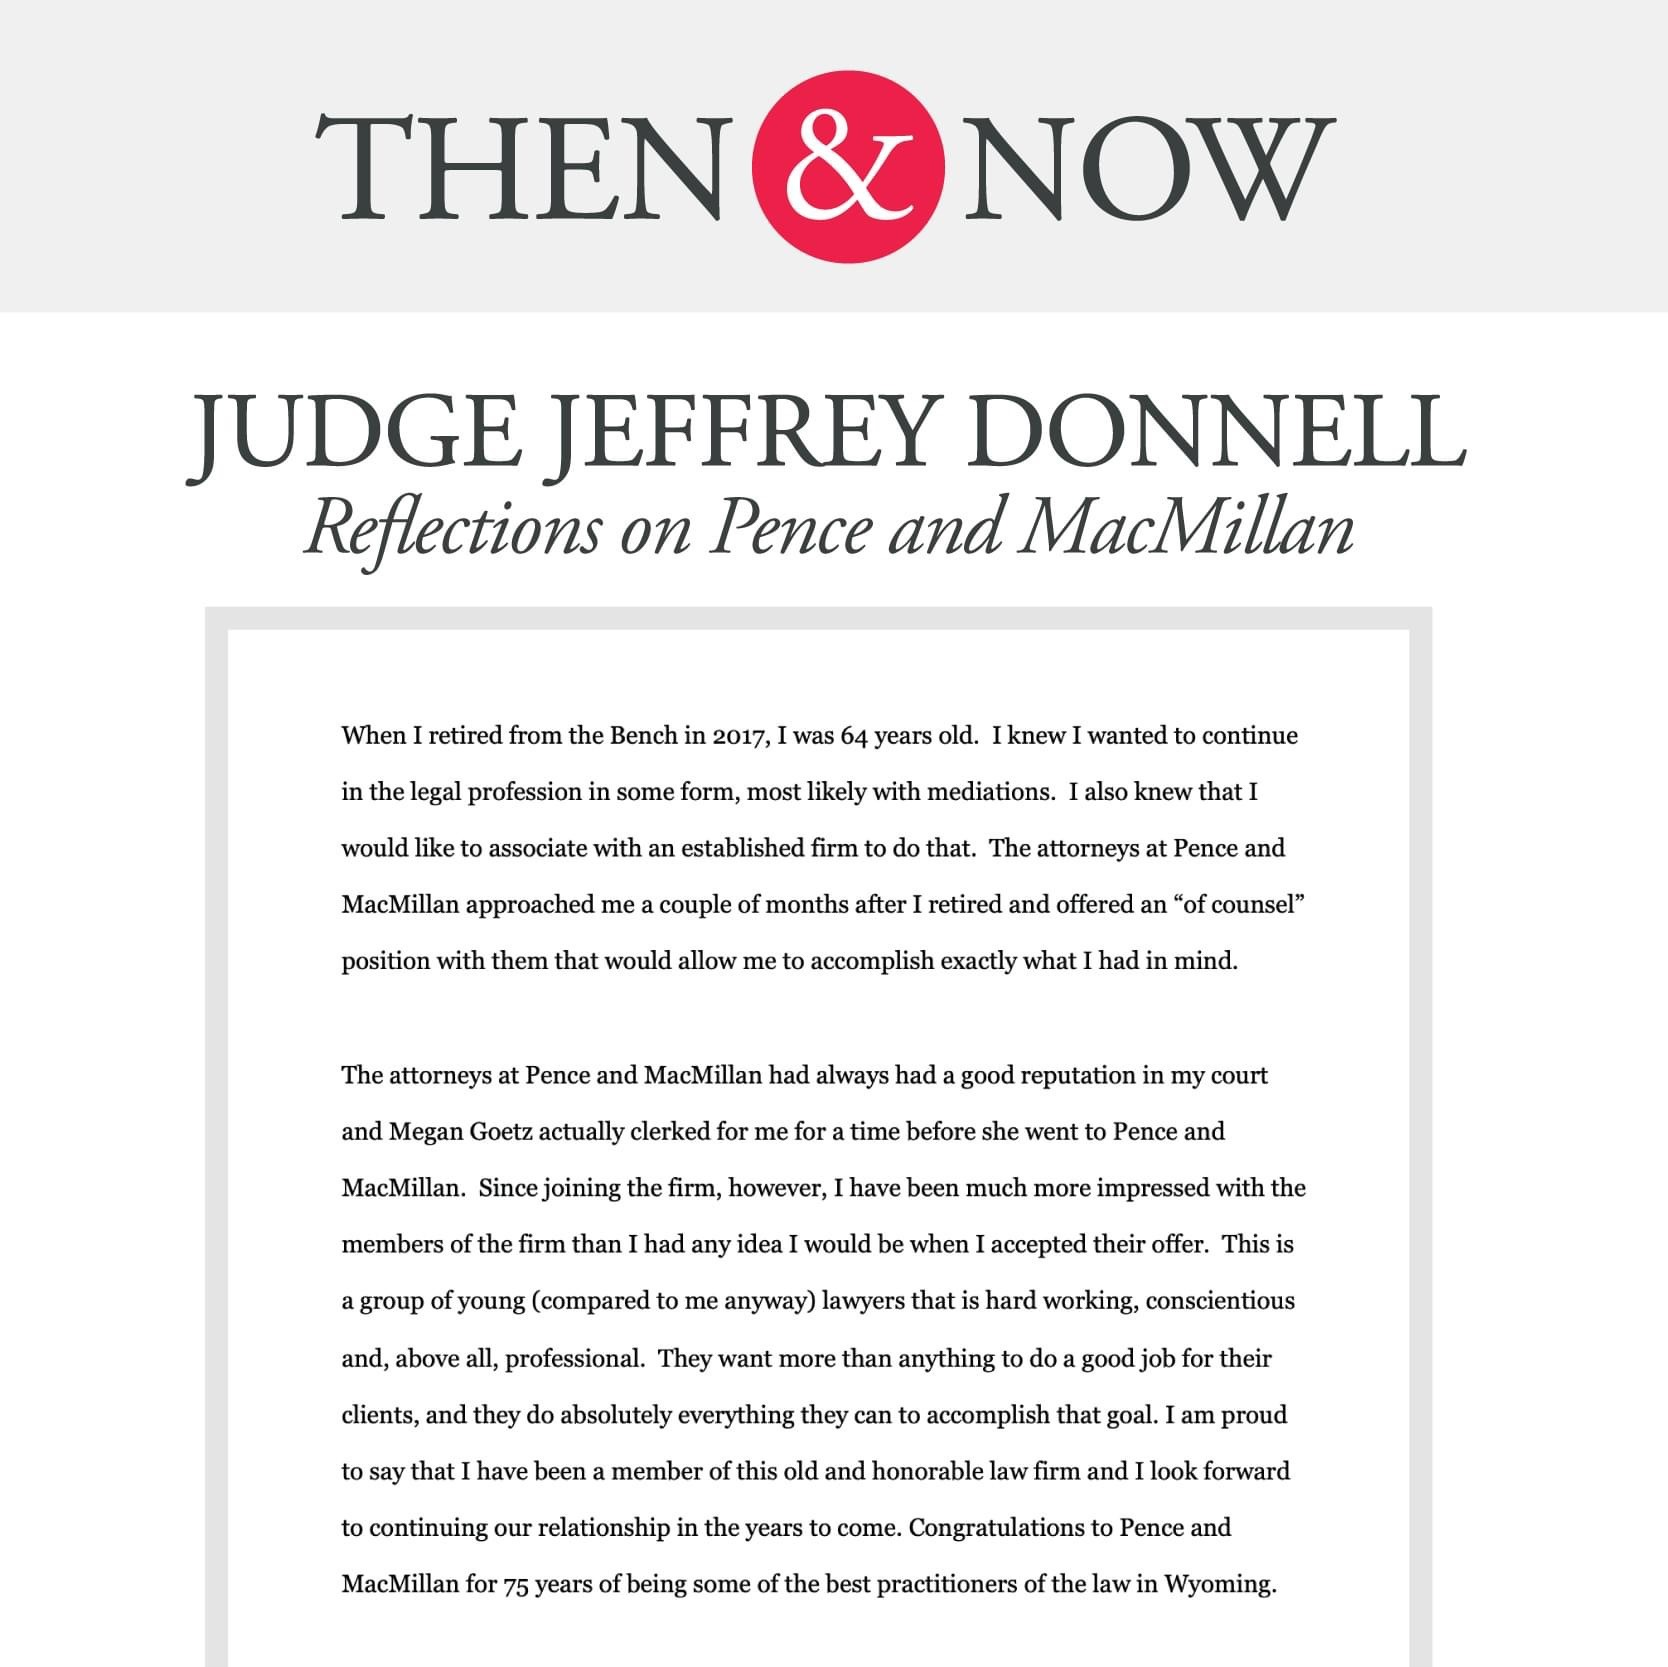 Then&Now: Judge Jeffrey Donnell Reflections on Pence and MacMillan